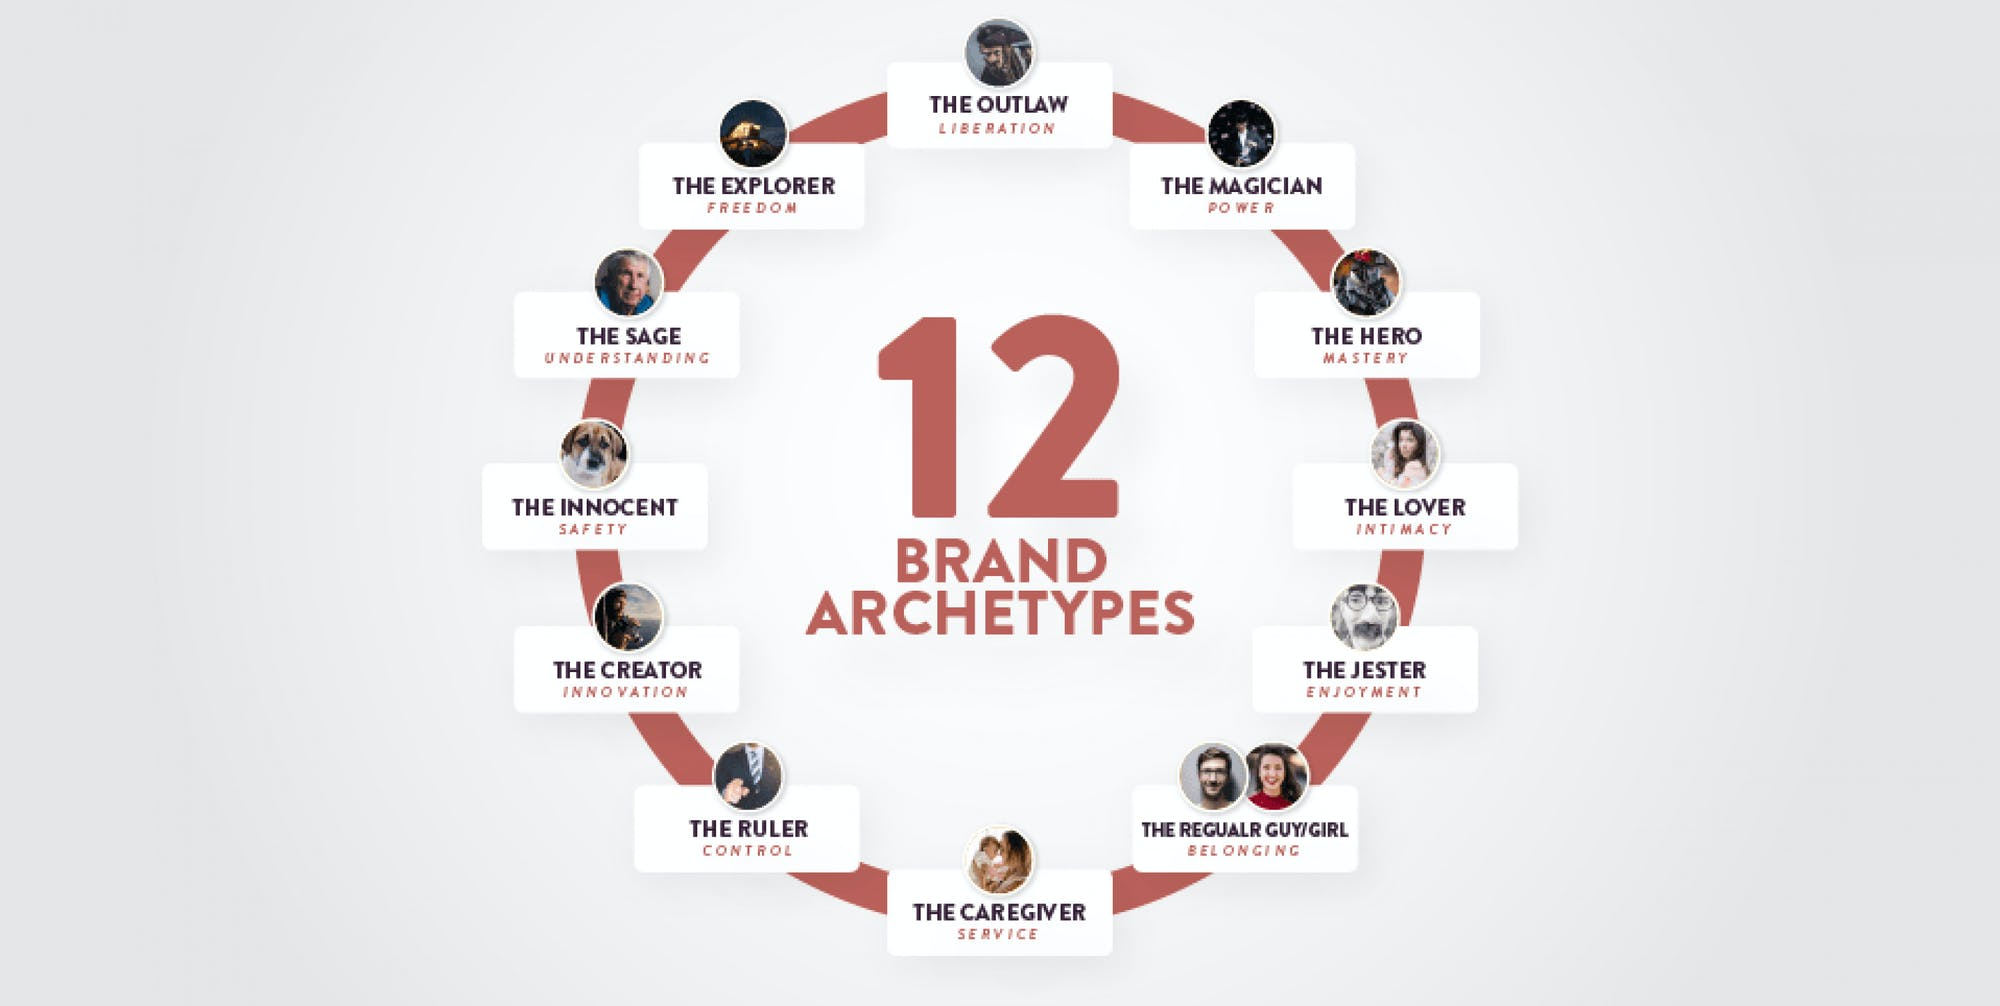 Walpole Insight Using the power of archetypes to supercharge your brand via storytelling by Mark Bower, Woven